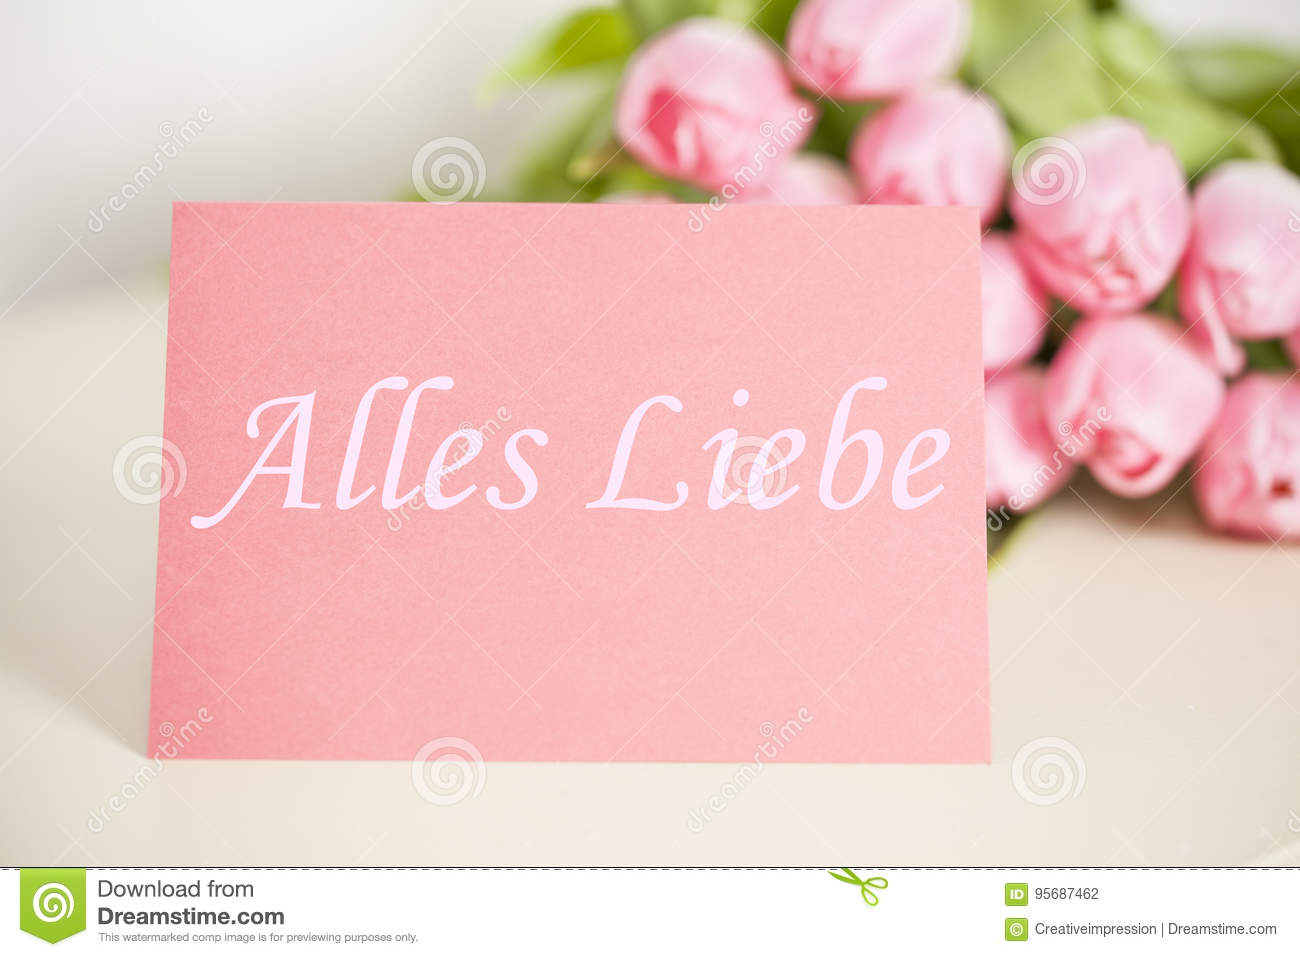 All the best card x28german x29 stock photo image of all the best card x28german x29 royalty free stock photo download all the best kristyandbryce Image collections